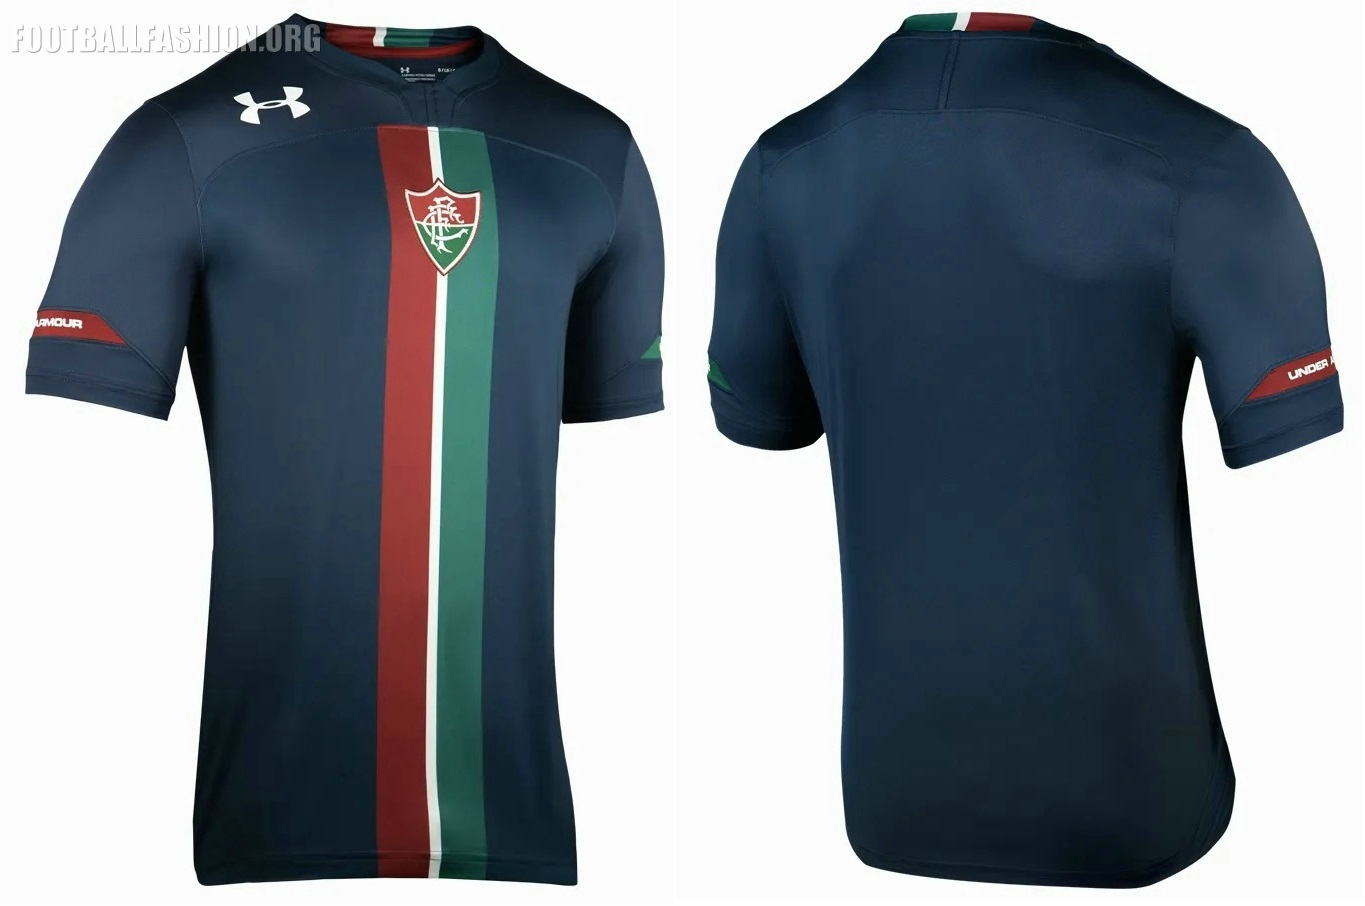 68668a3cb13 Fluminense Will debut their 2019 third kit when they meet Portuguesa-RJ at  the Maracanã Stadium in Campeonato Carioca action on Sunday.